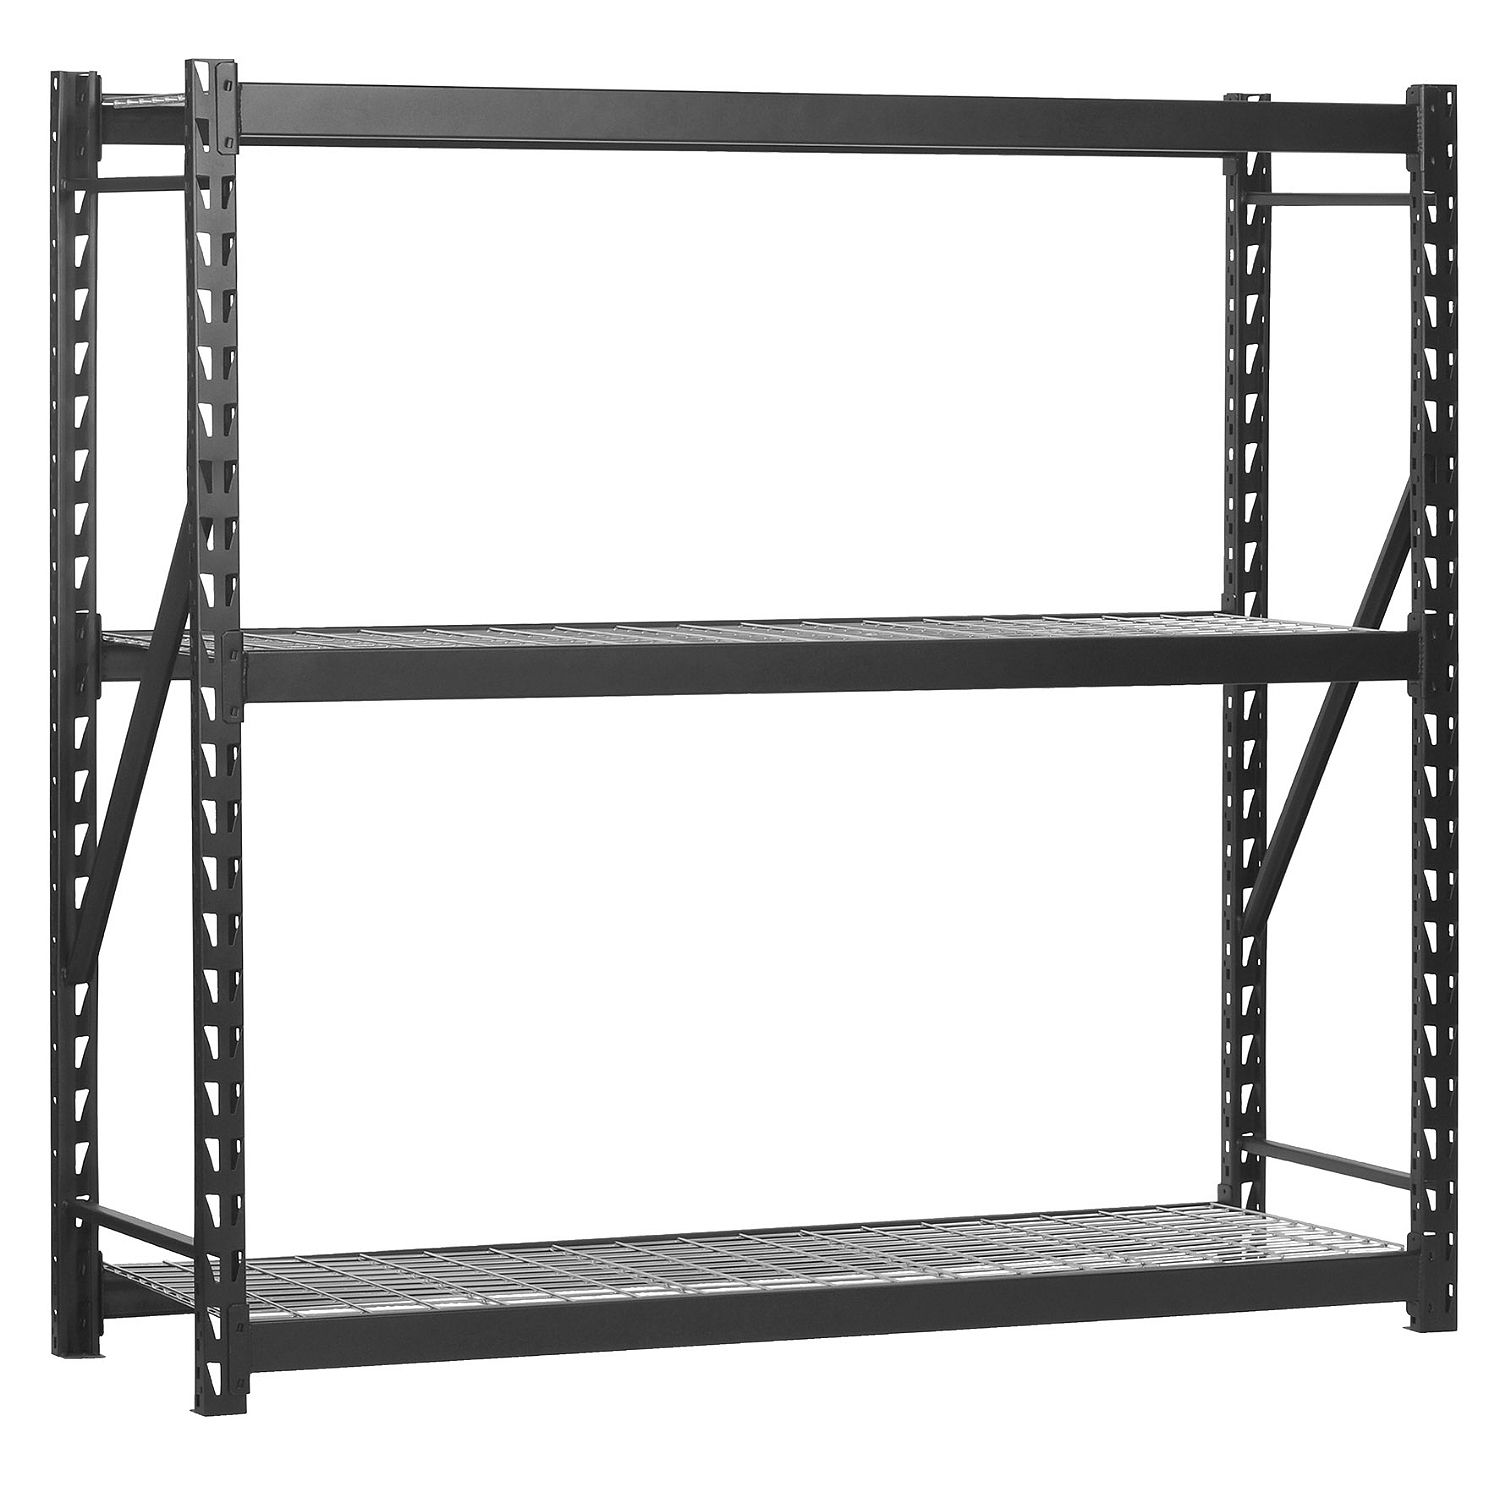 Chic Heavy Duty Welded Storage Rack In Black By Edsal Shelving For Home Furniture Ideas